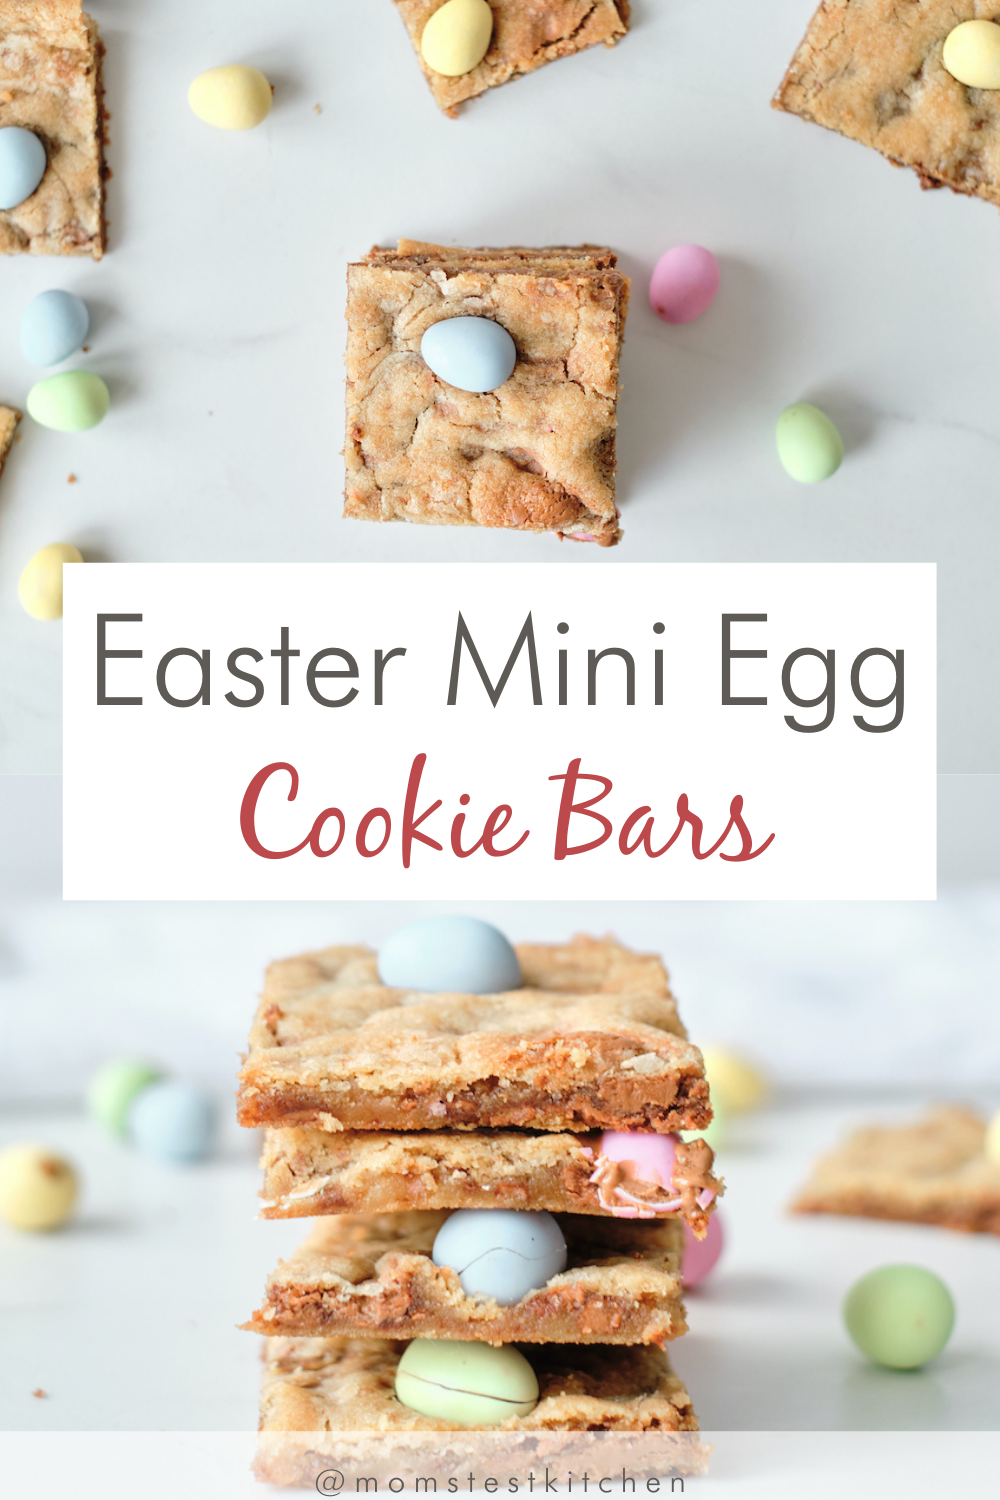 Fun and festive, these Easter Mini Egg Cookie Bars are about to become your new favorite Spring dessert! These easy sugar cookie bars packed with chocolate chips, caramel eggs, and mini eggs are perfect for your Easter family gathering.